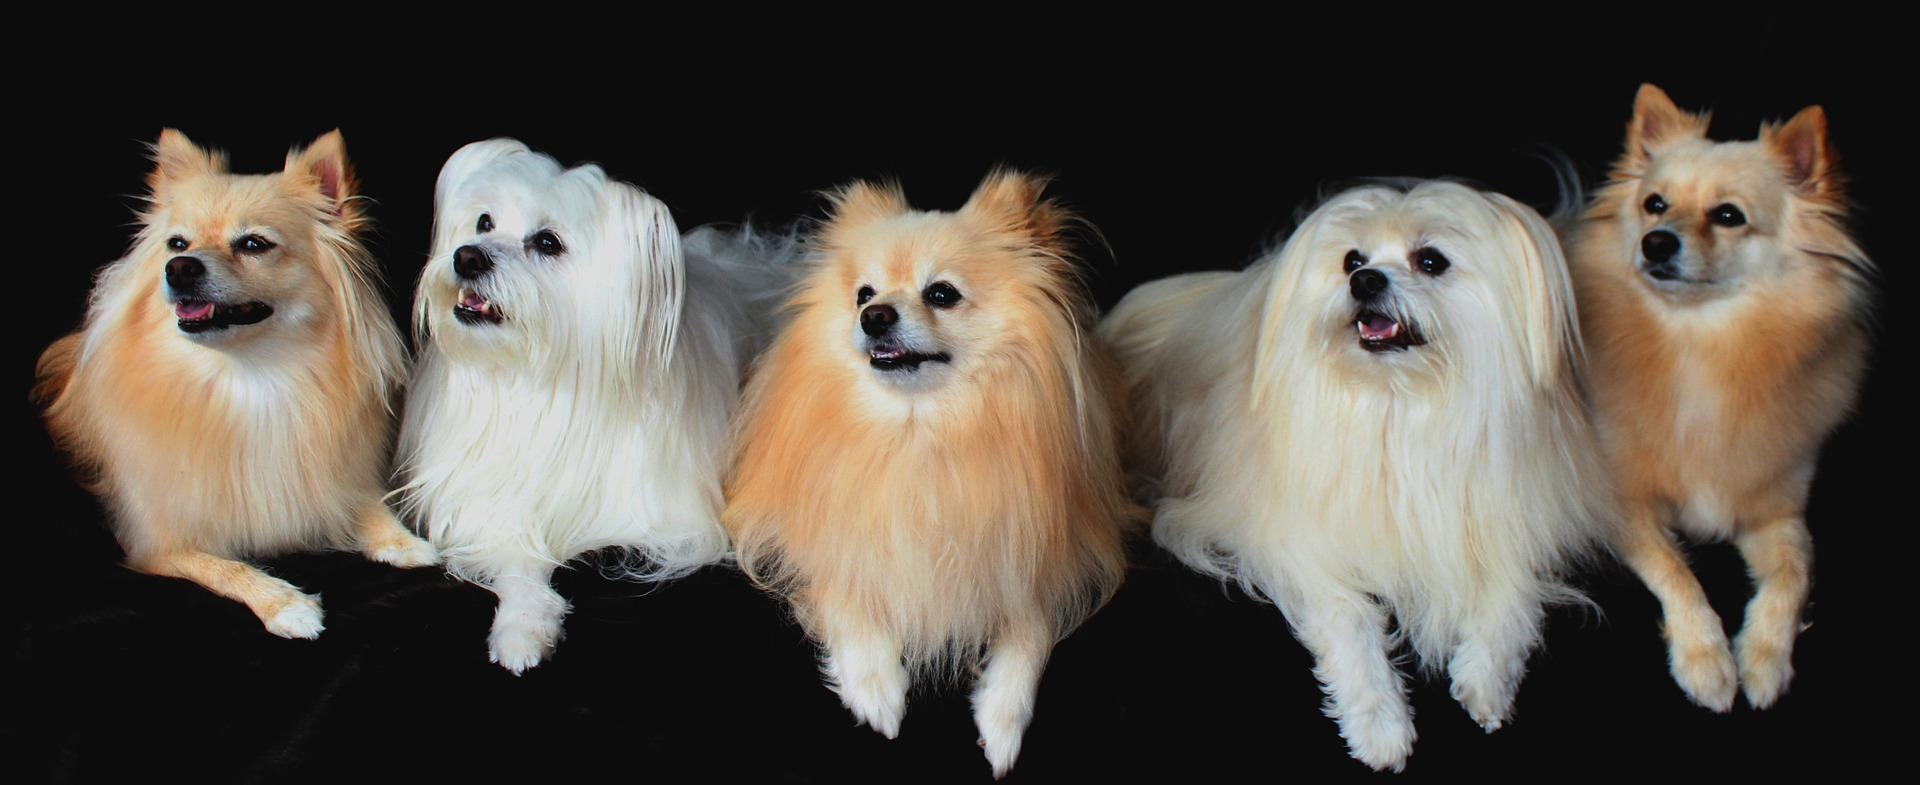 dogs-1668020_1920